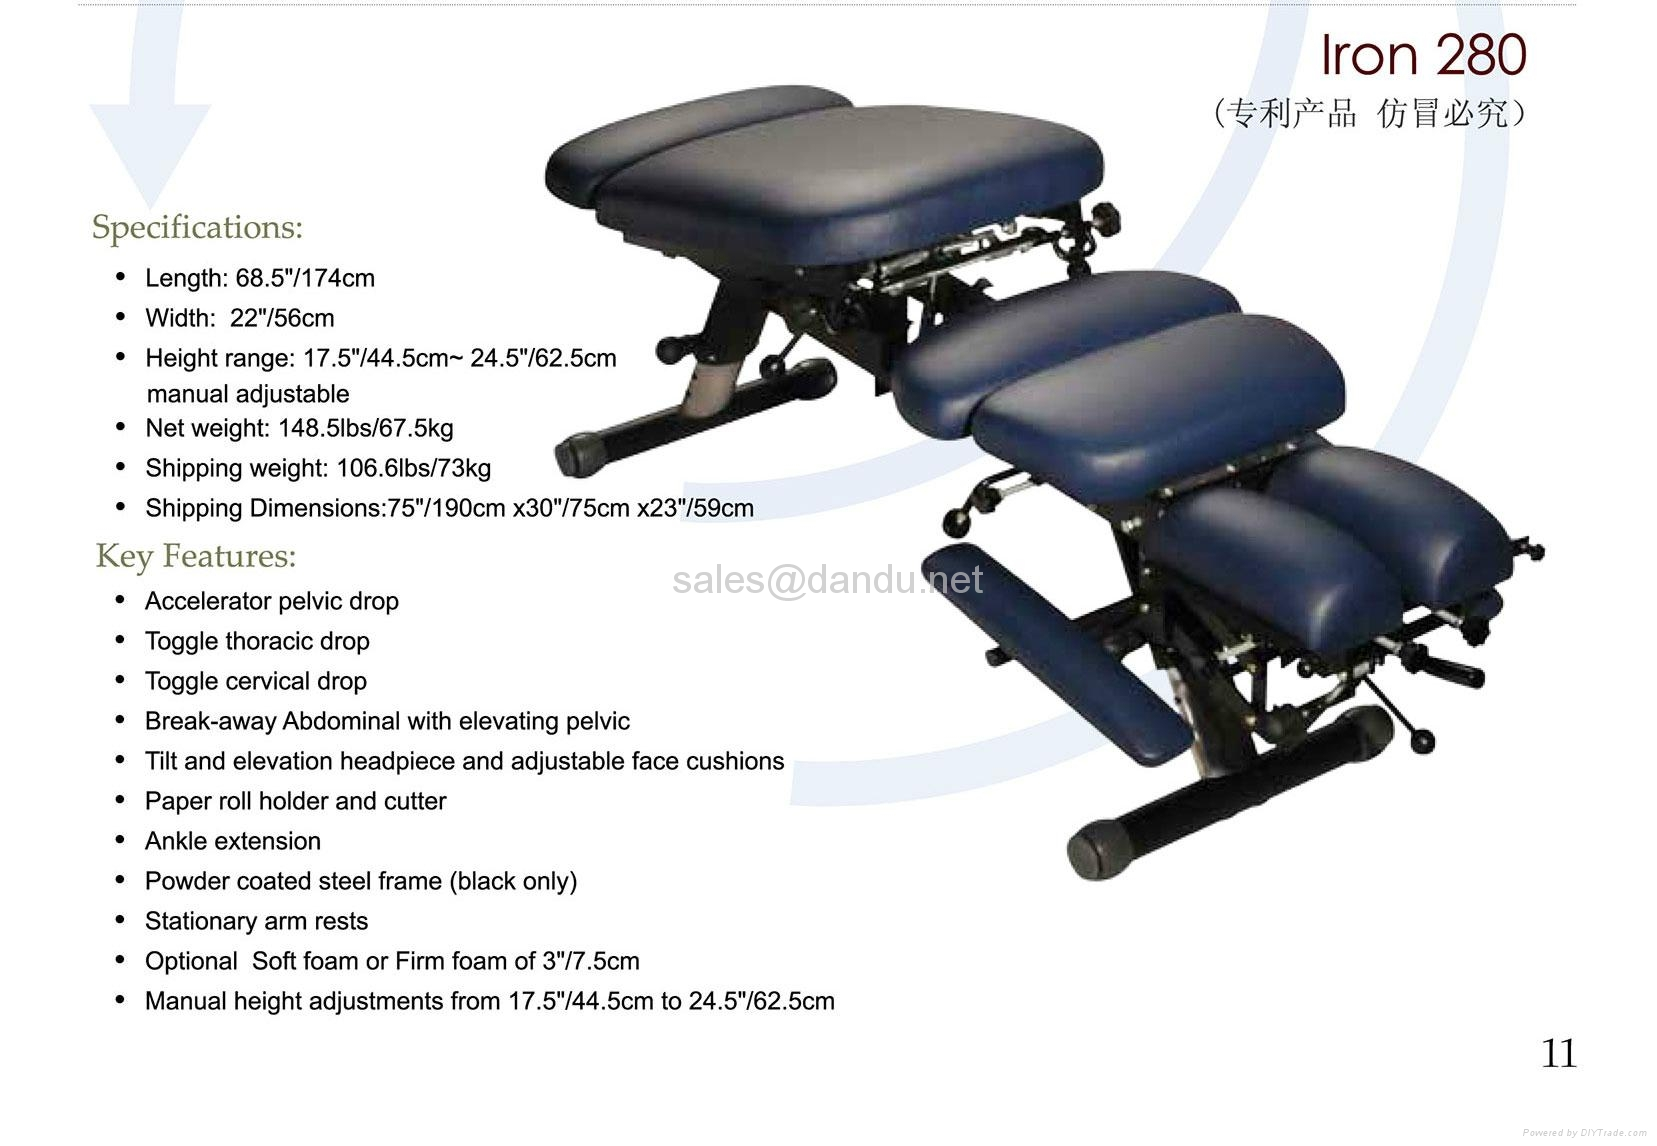 Terrific Stationary Chiropractic Bench Table Iron 280 N A China Unemploymentrelief Wooden Chair Designs For Living Room Unemploymentrelieforg